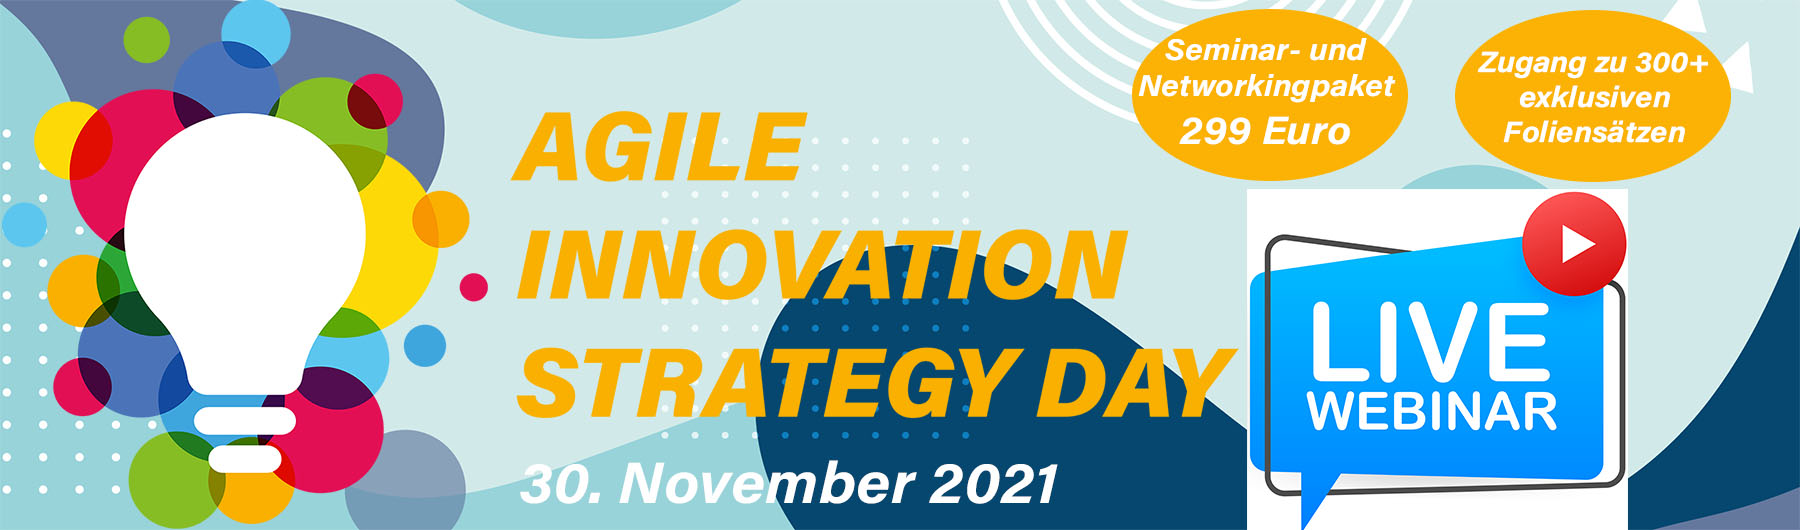 Agile Innovation Strategy Day